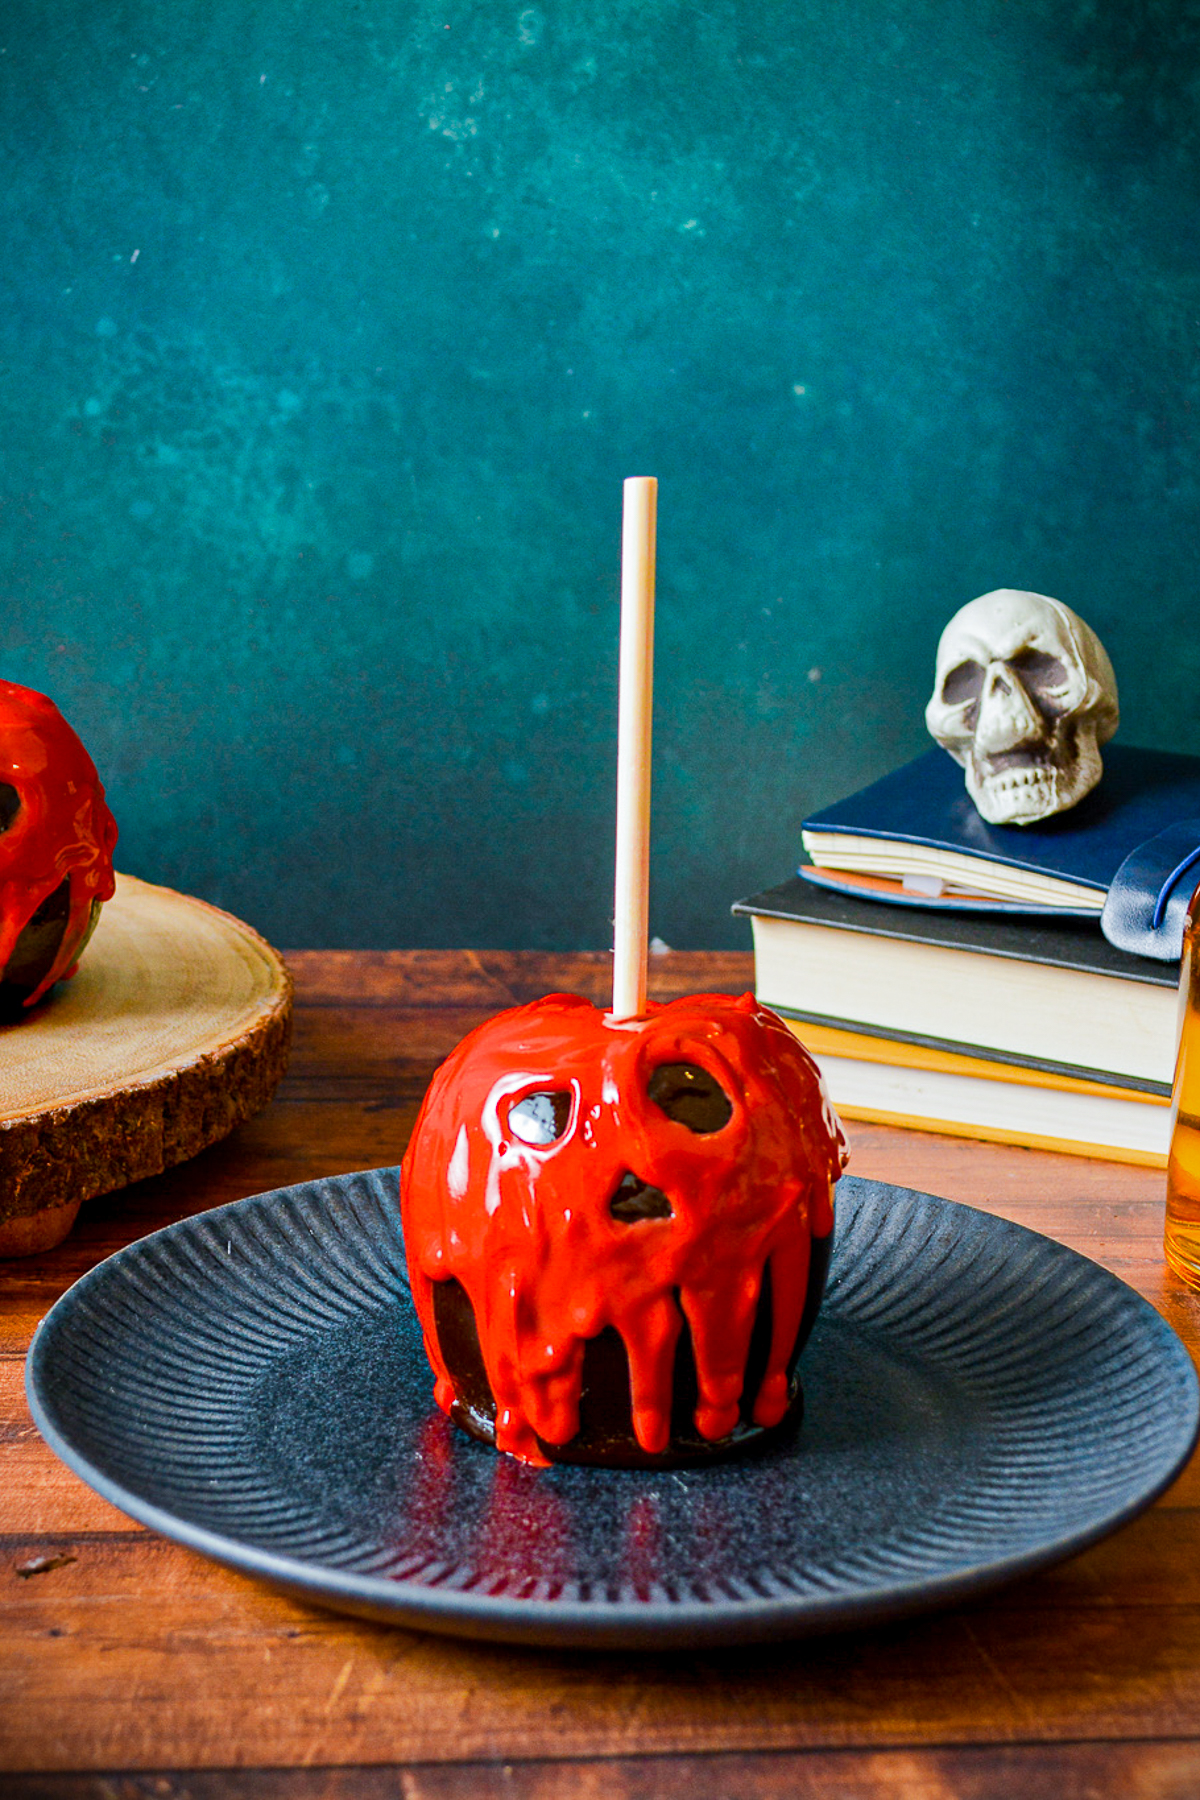 One Poison Apple on plate with books and skull in background.